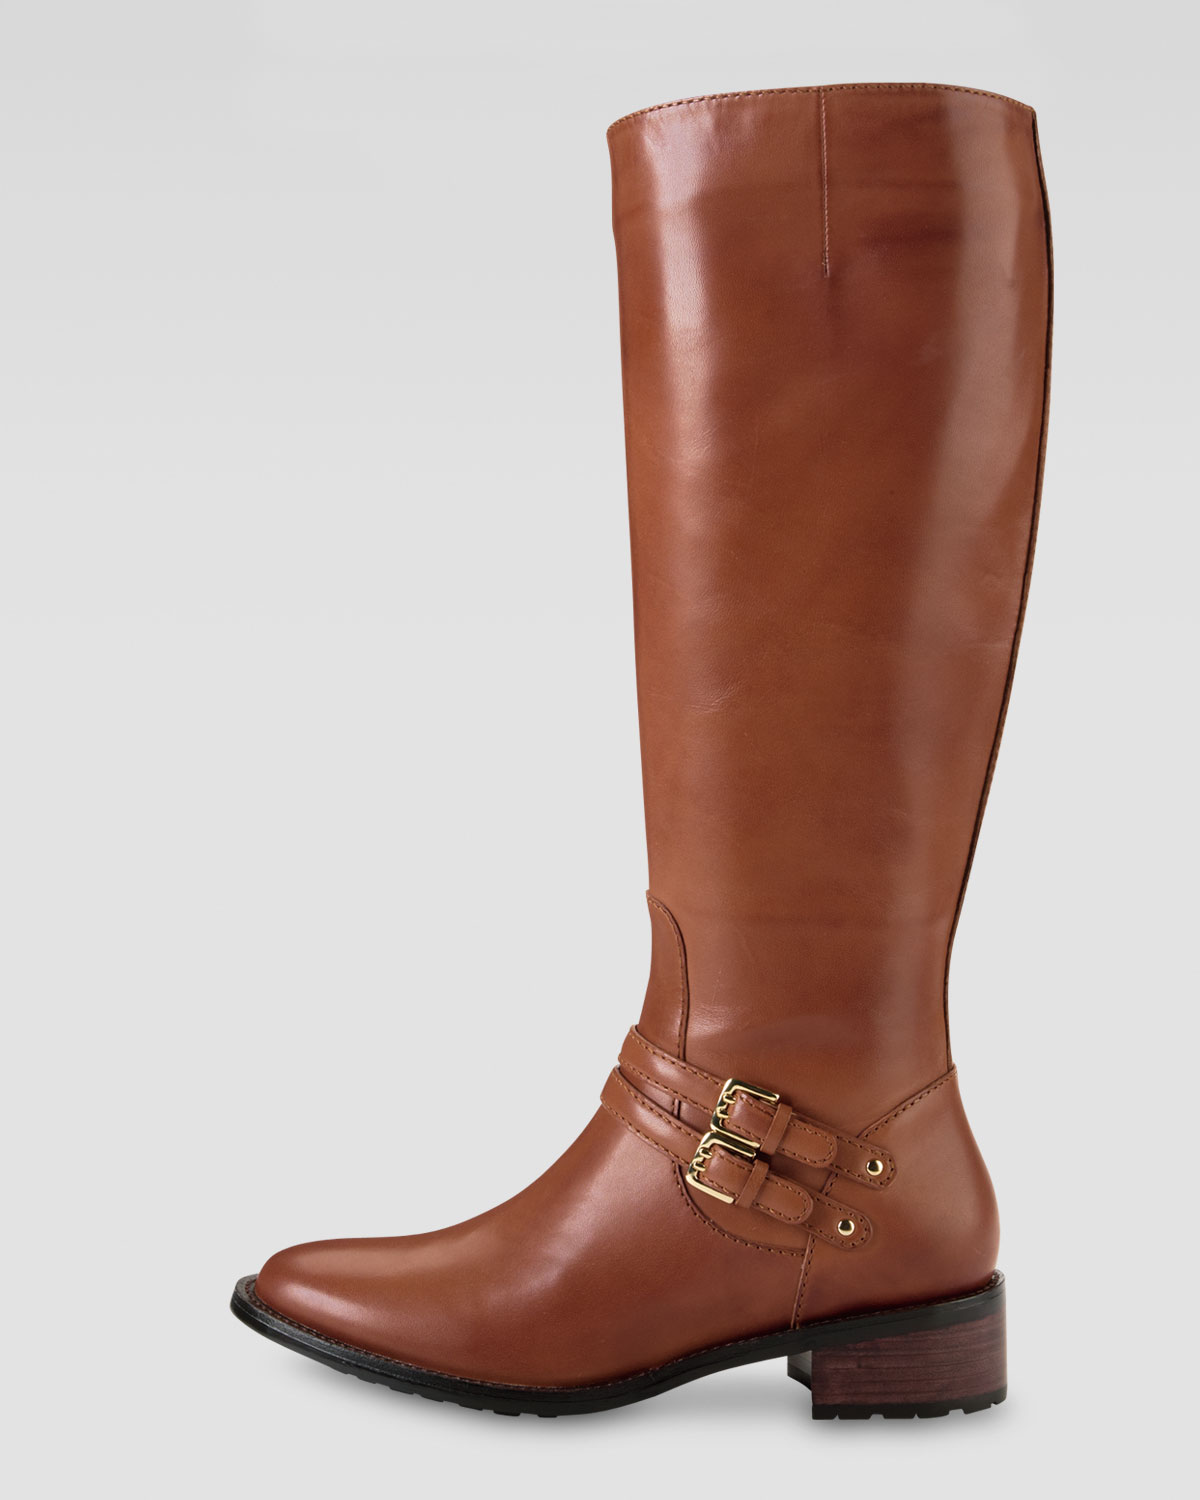 Cole haan Dover Riding Boot Woodbury in Brown | Lyst